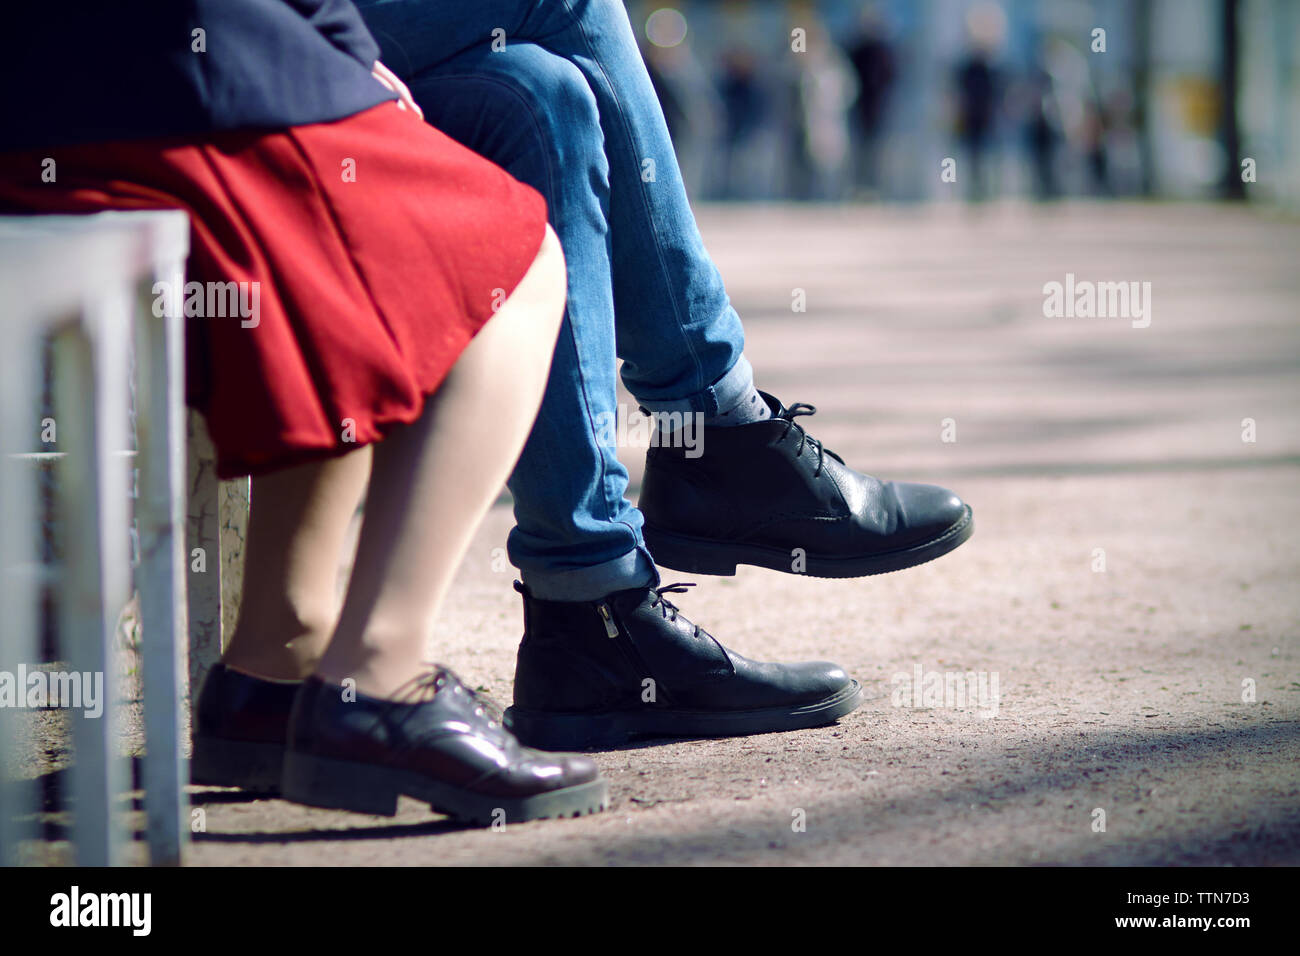 59359e44c Legs of a young couple sitting on a summer day on a bench. The man